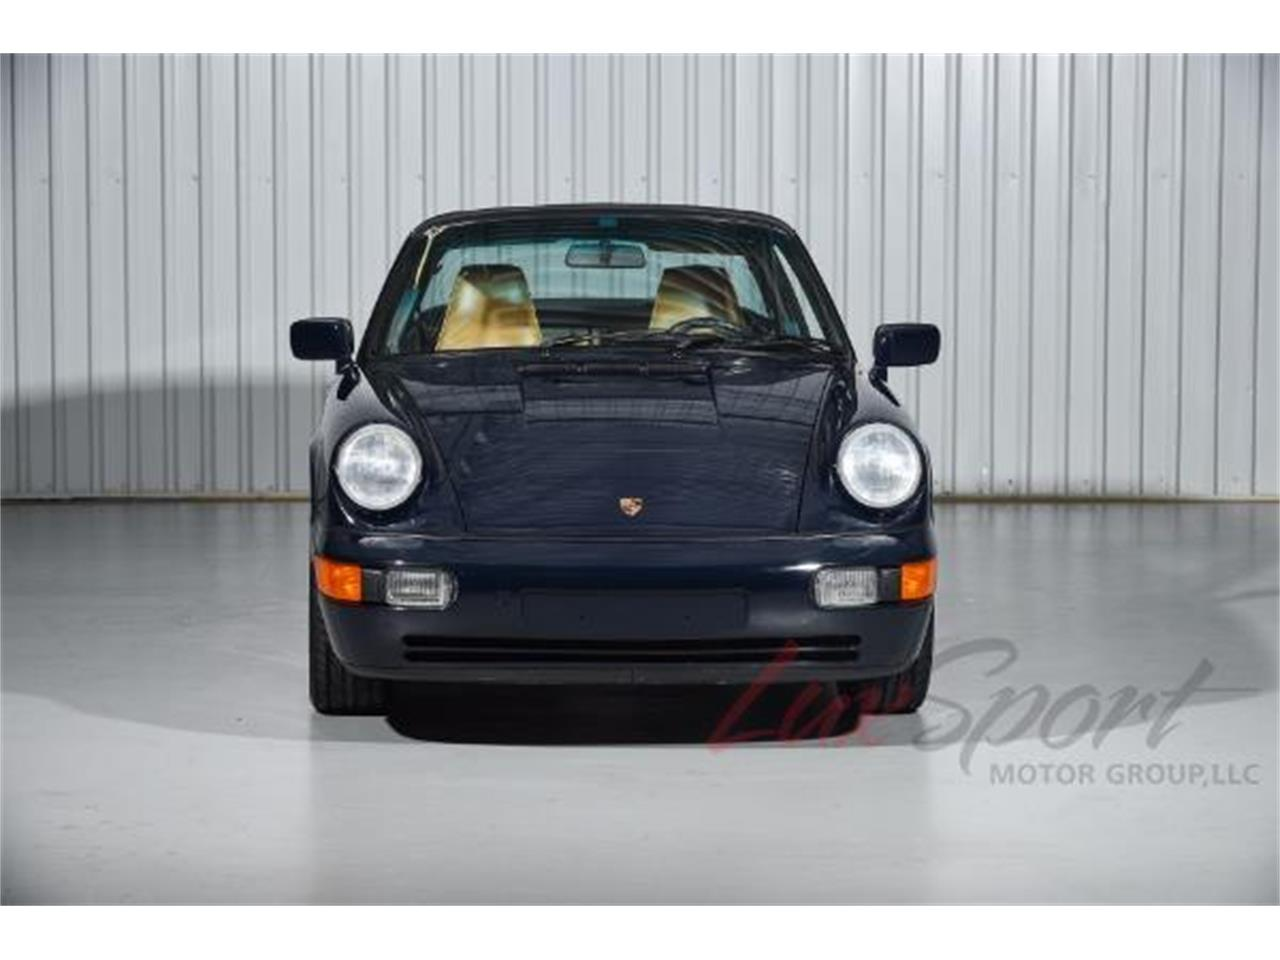 Large Picture of '90 Porsche 964 Carrera 2 Targa located in New York - MNZP